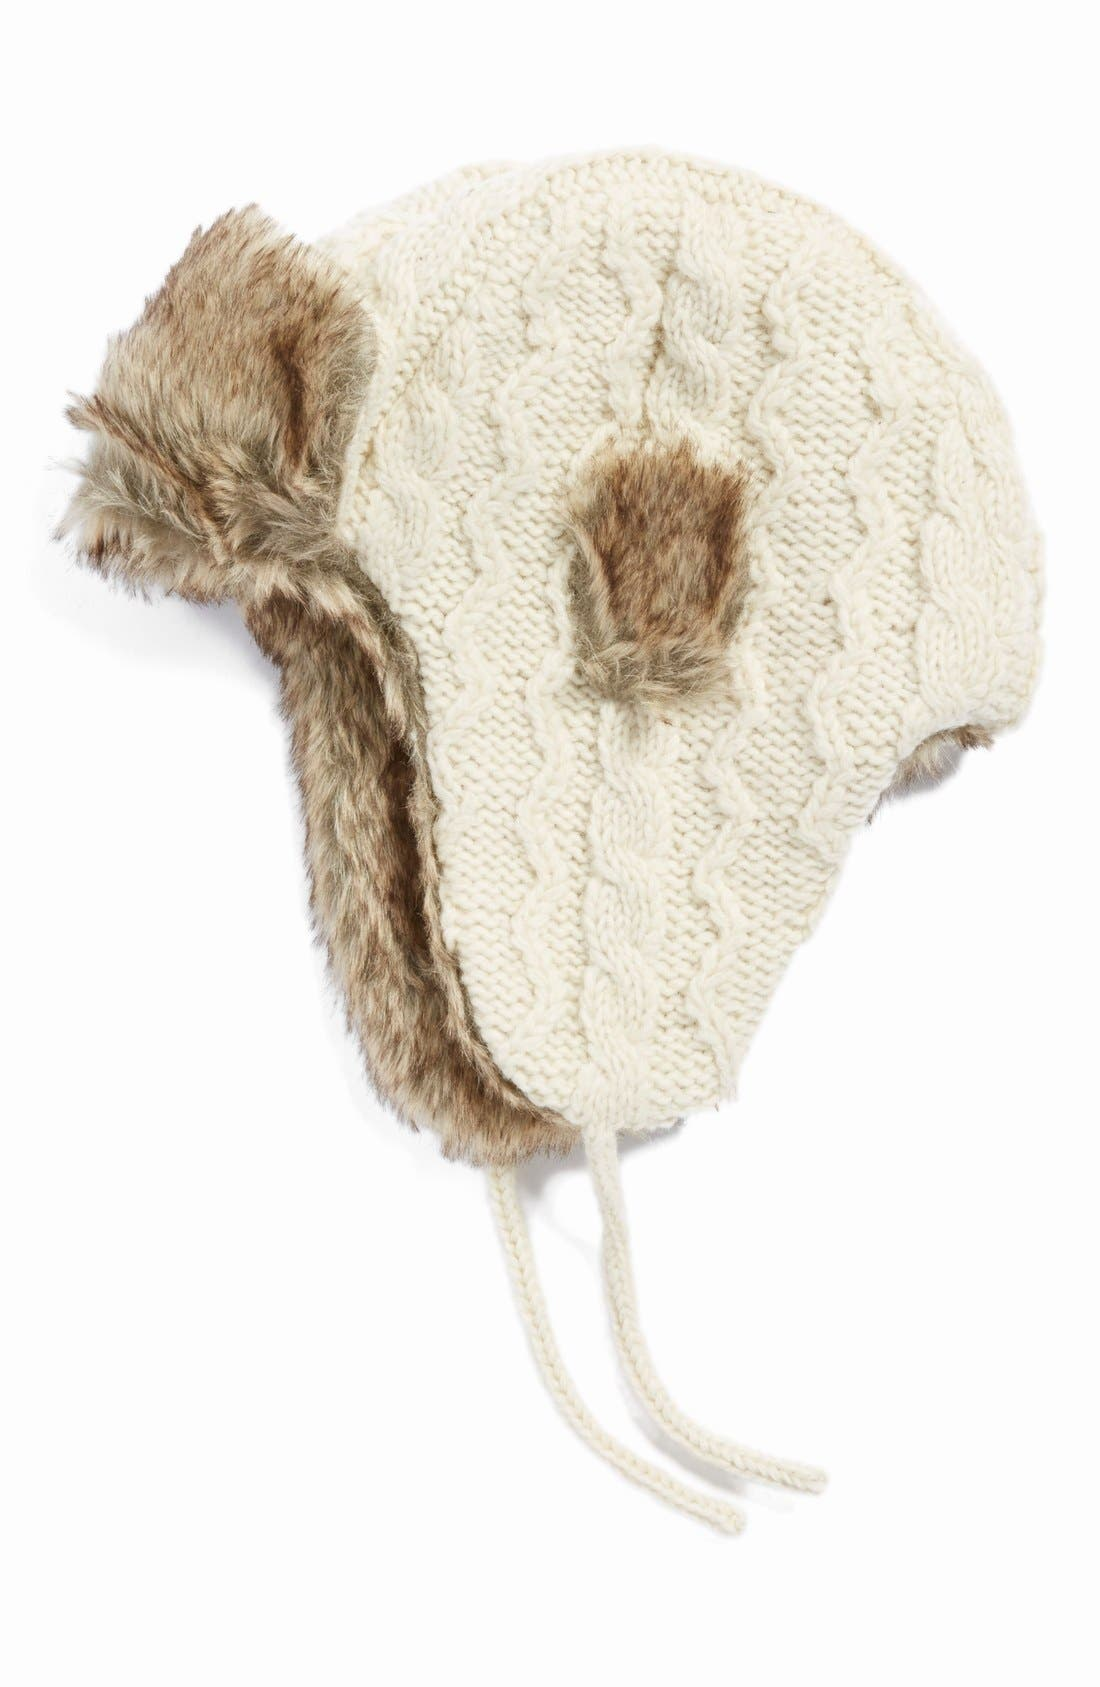 Main Image - NirvannaDesigns Cable Knit Ear Flap Hat with FauxFur Trim